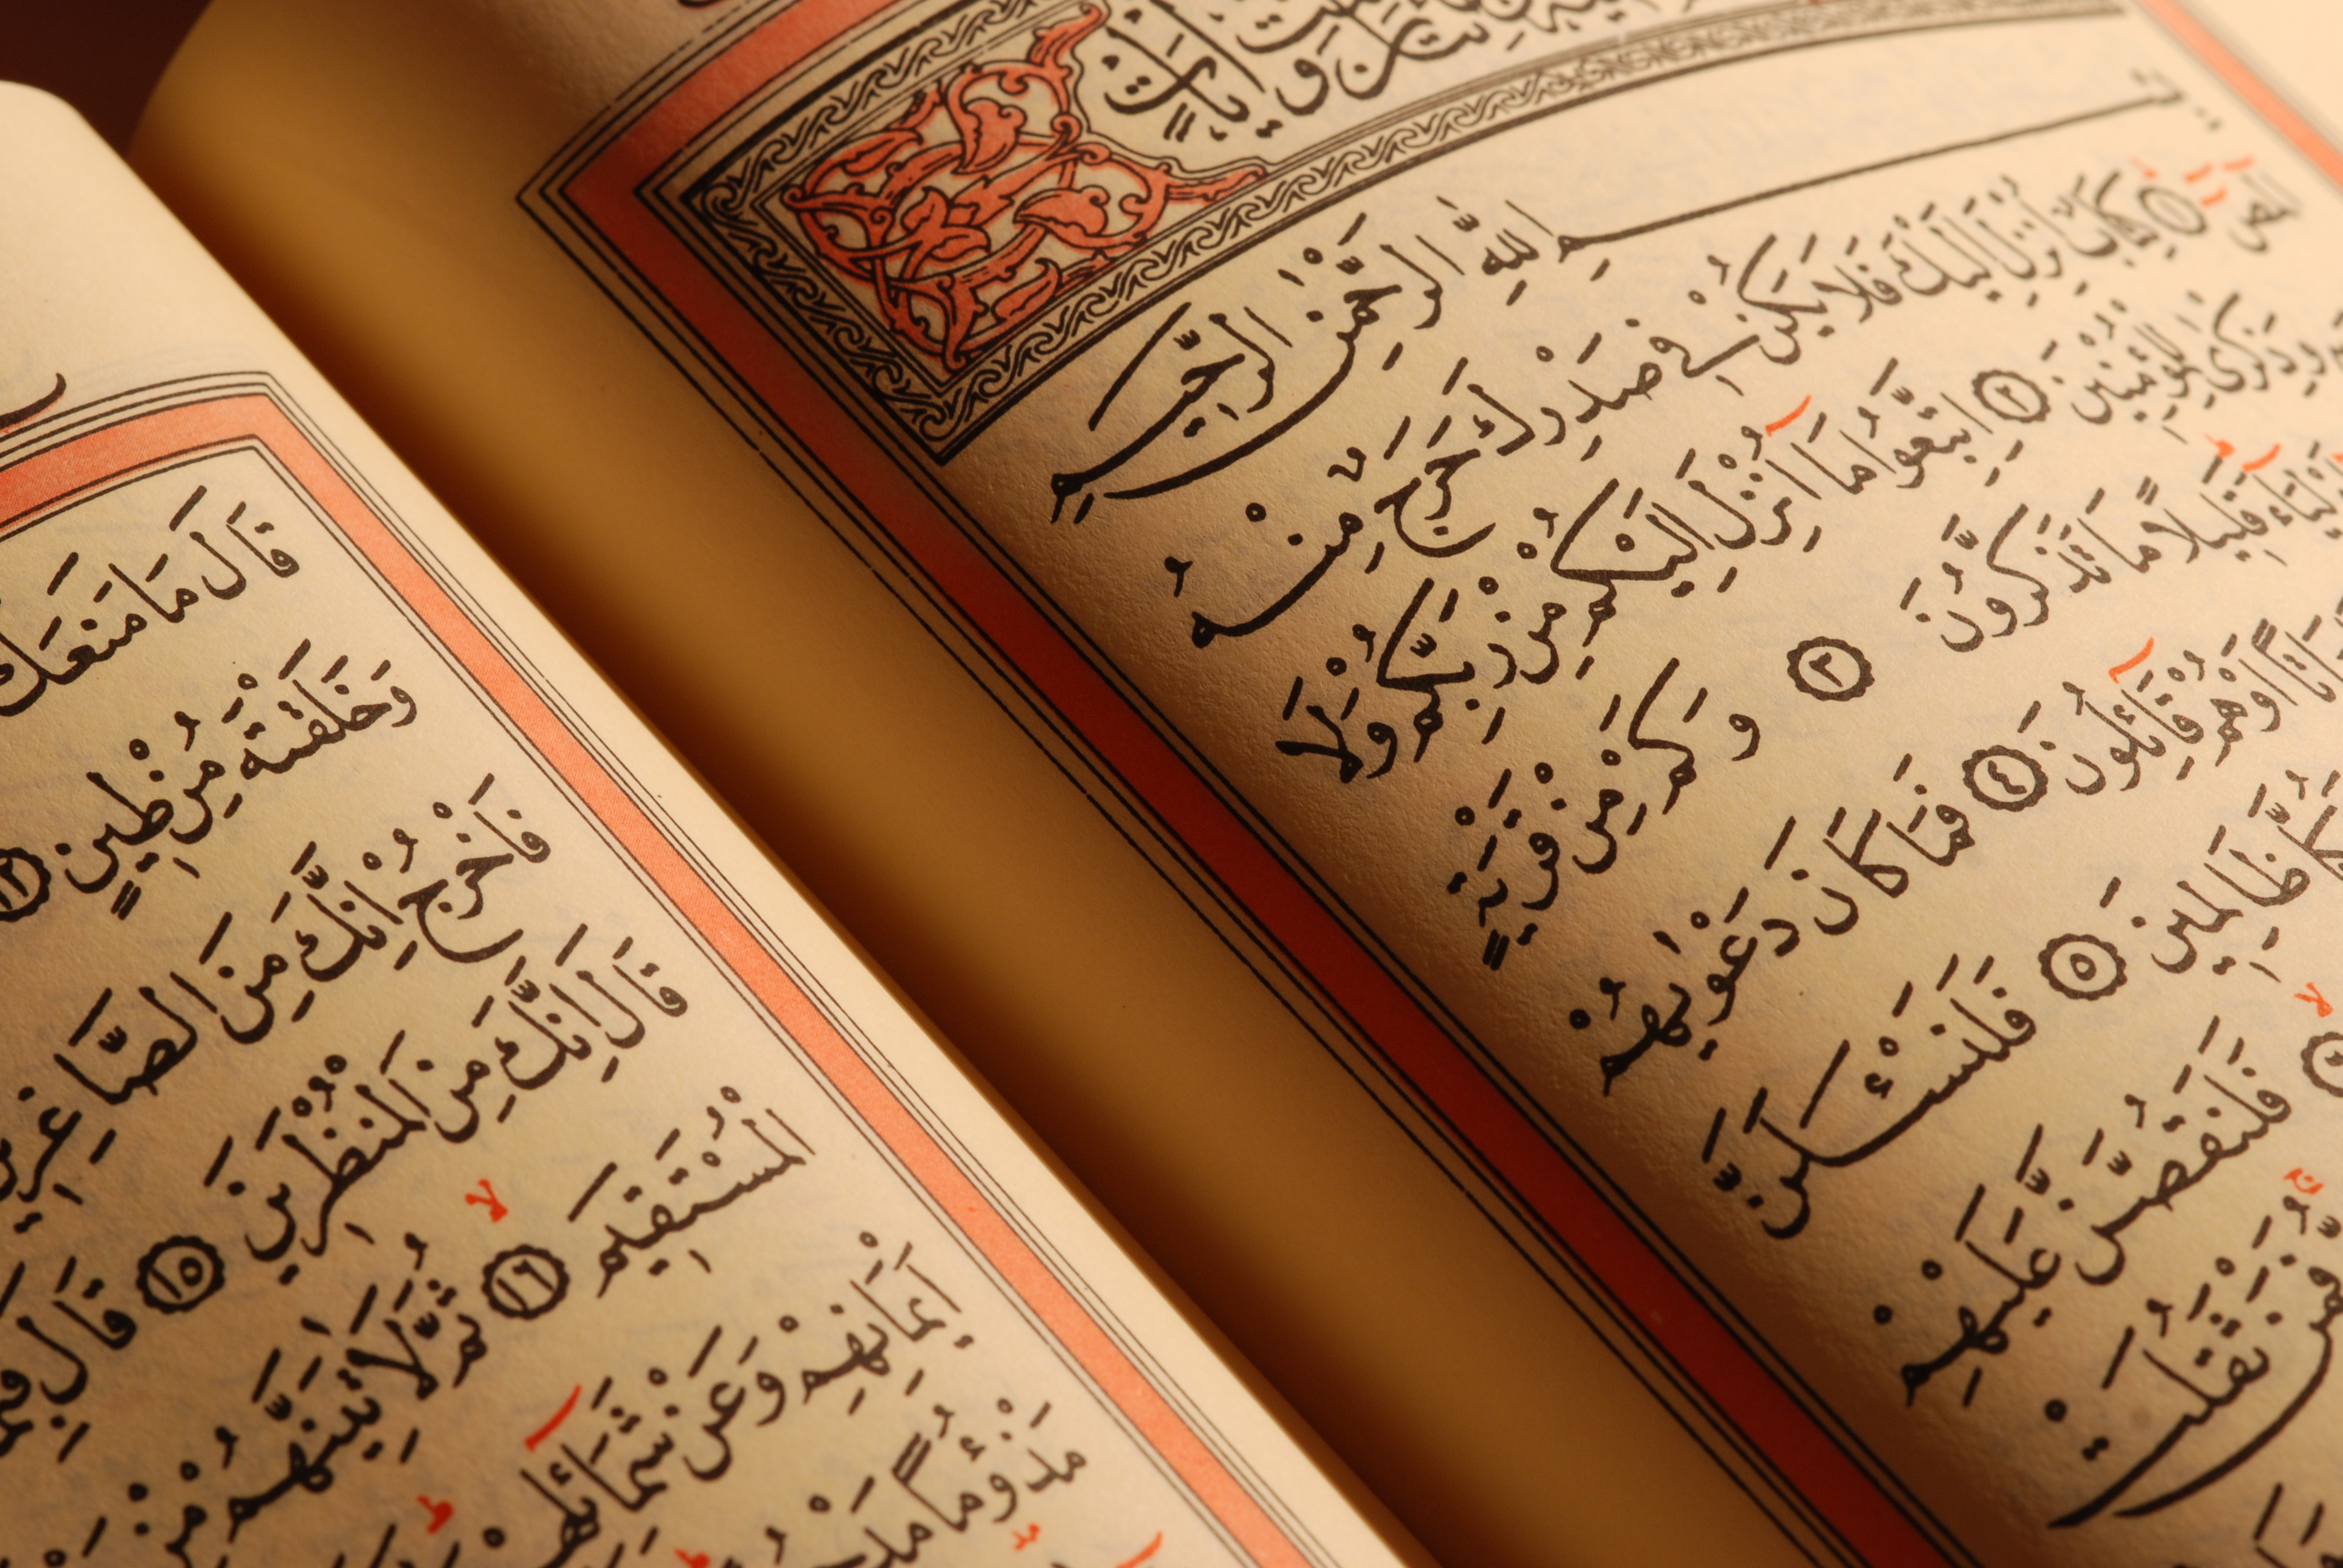 [Read] When you Read Quran – Fawaz al-Madkhali